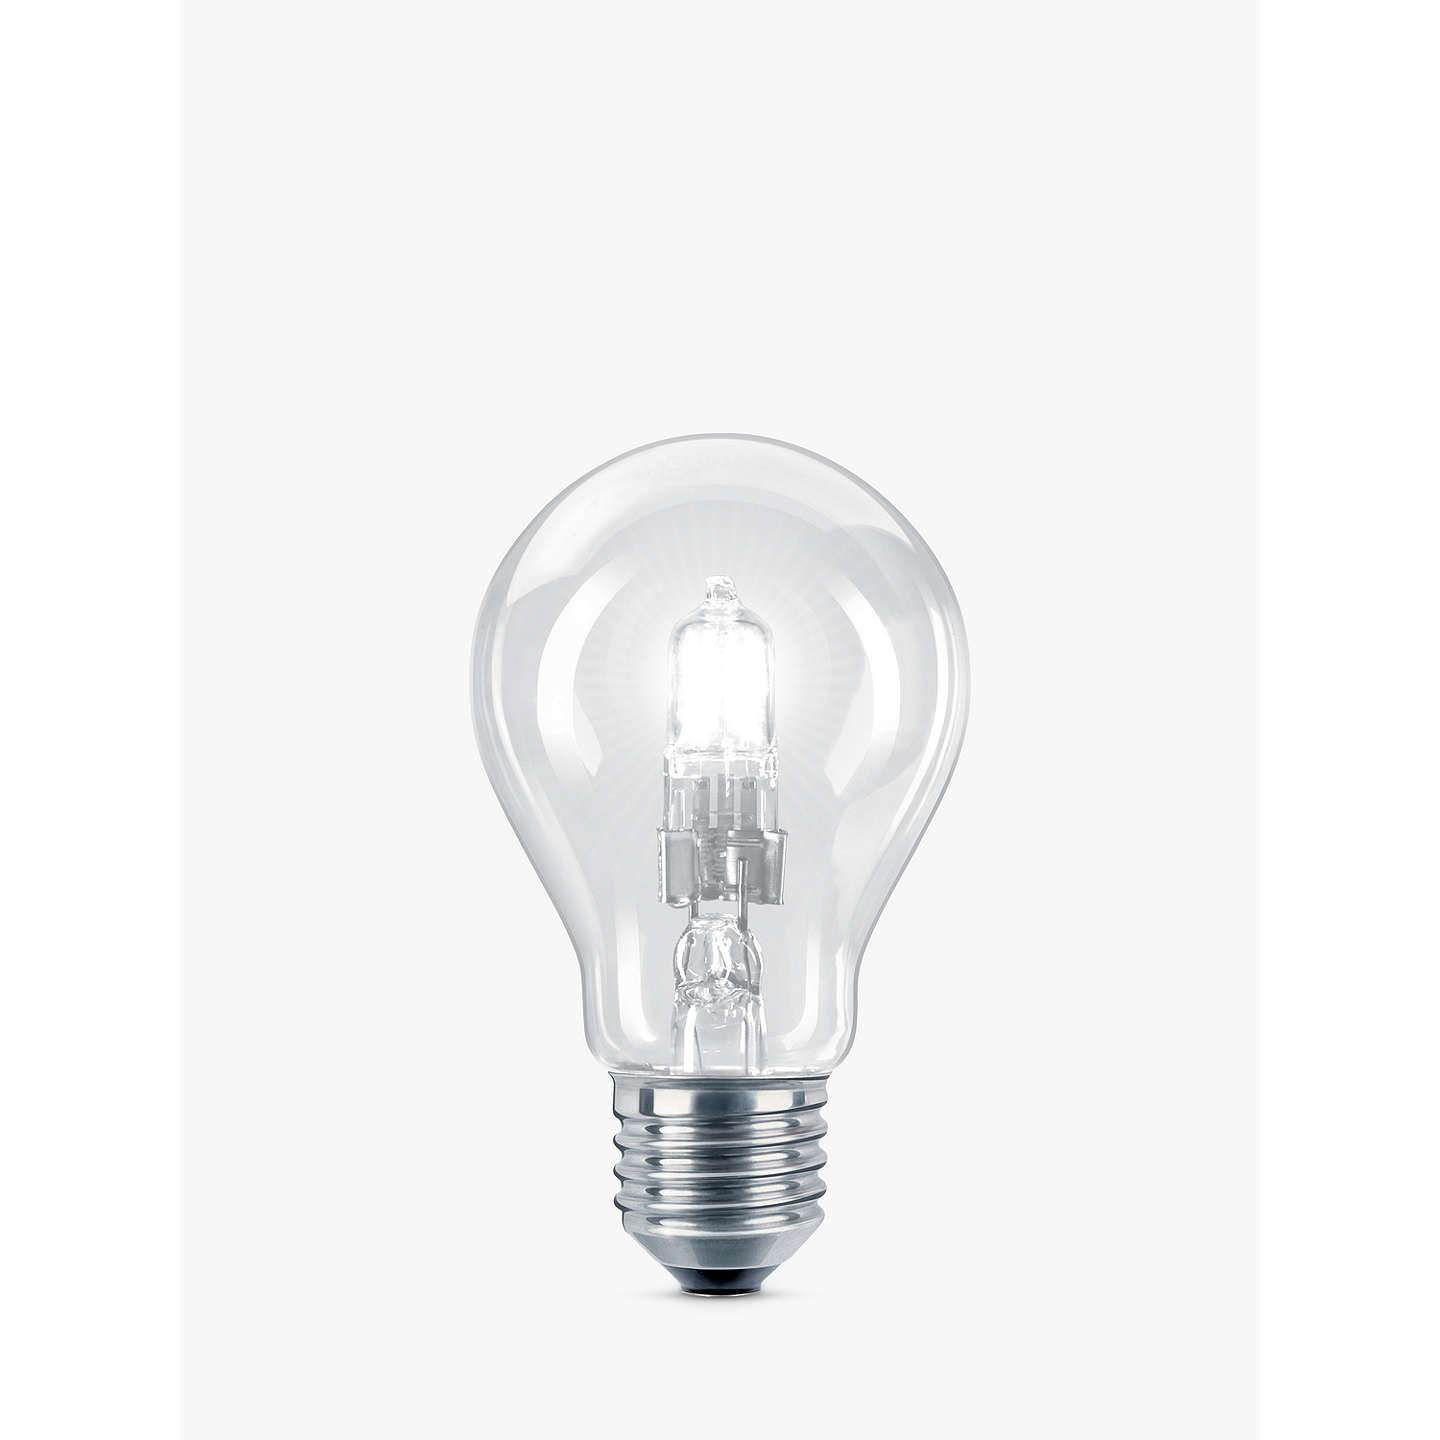 BuyPhilips 28W ES Eco Classic Bulb, Clear Online at johnlewis.com